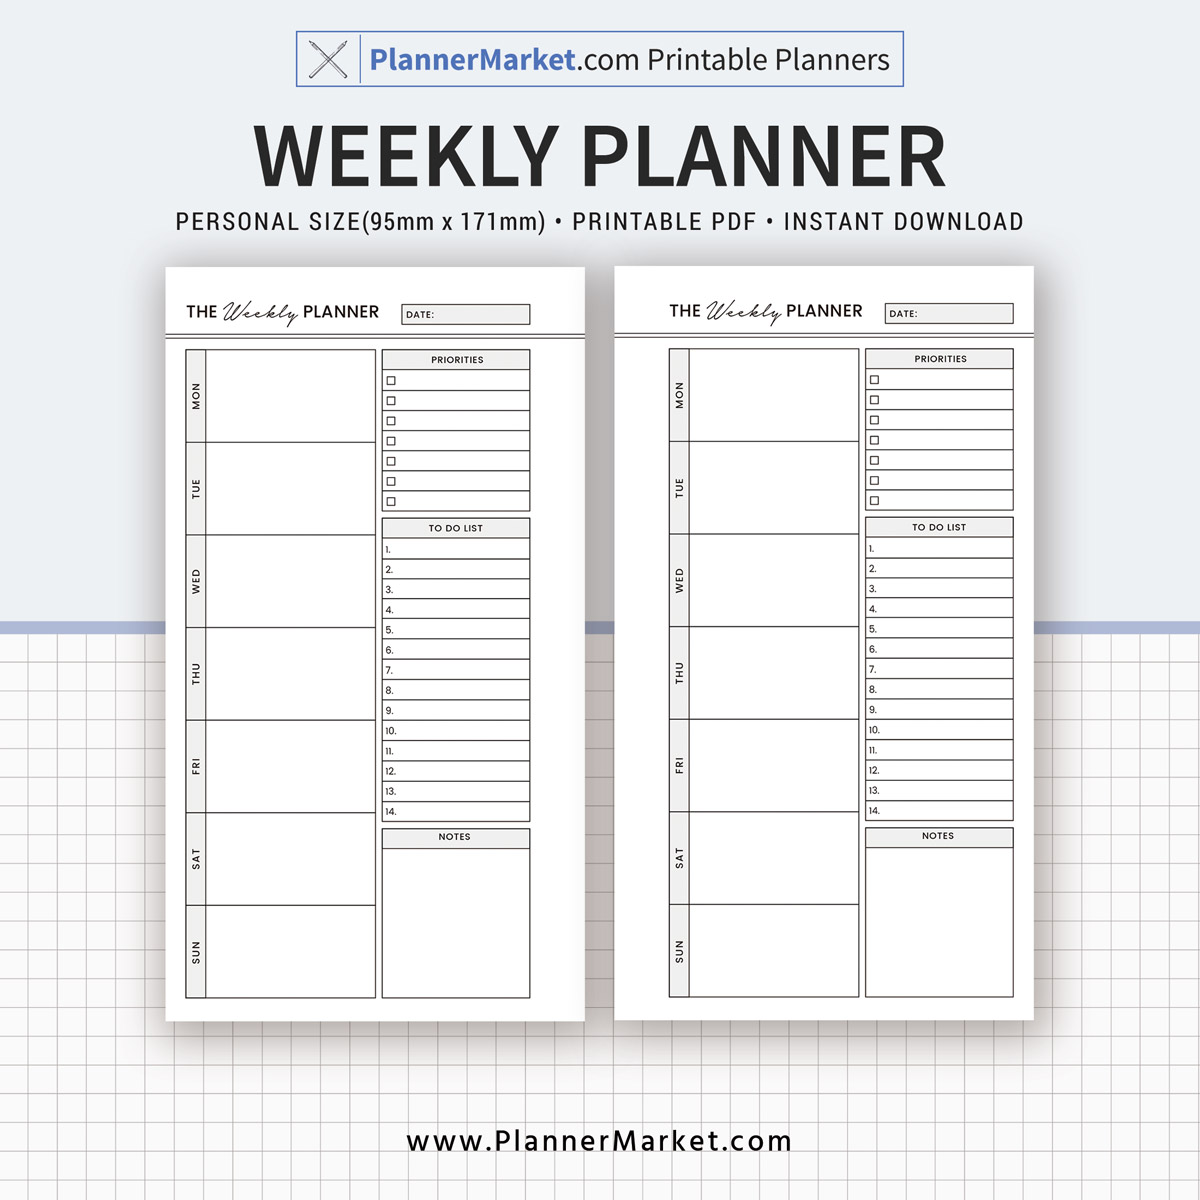 photo about Planner Pdf named Weekly Planner, 2019 Planner Inserts, Unique Dimensions Planner, Planner Refill, Planner Binder, Printable PDF, Fast Down load